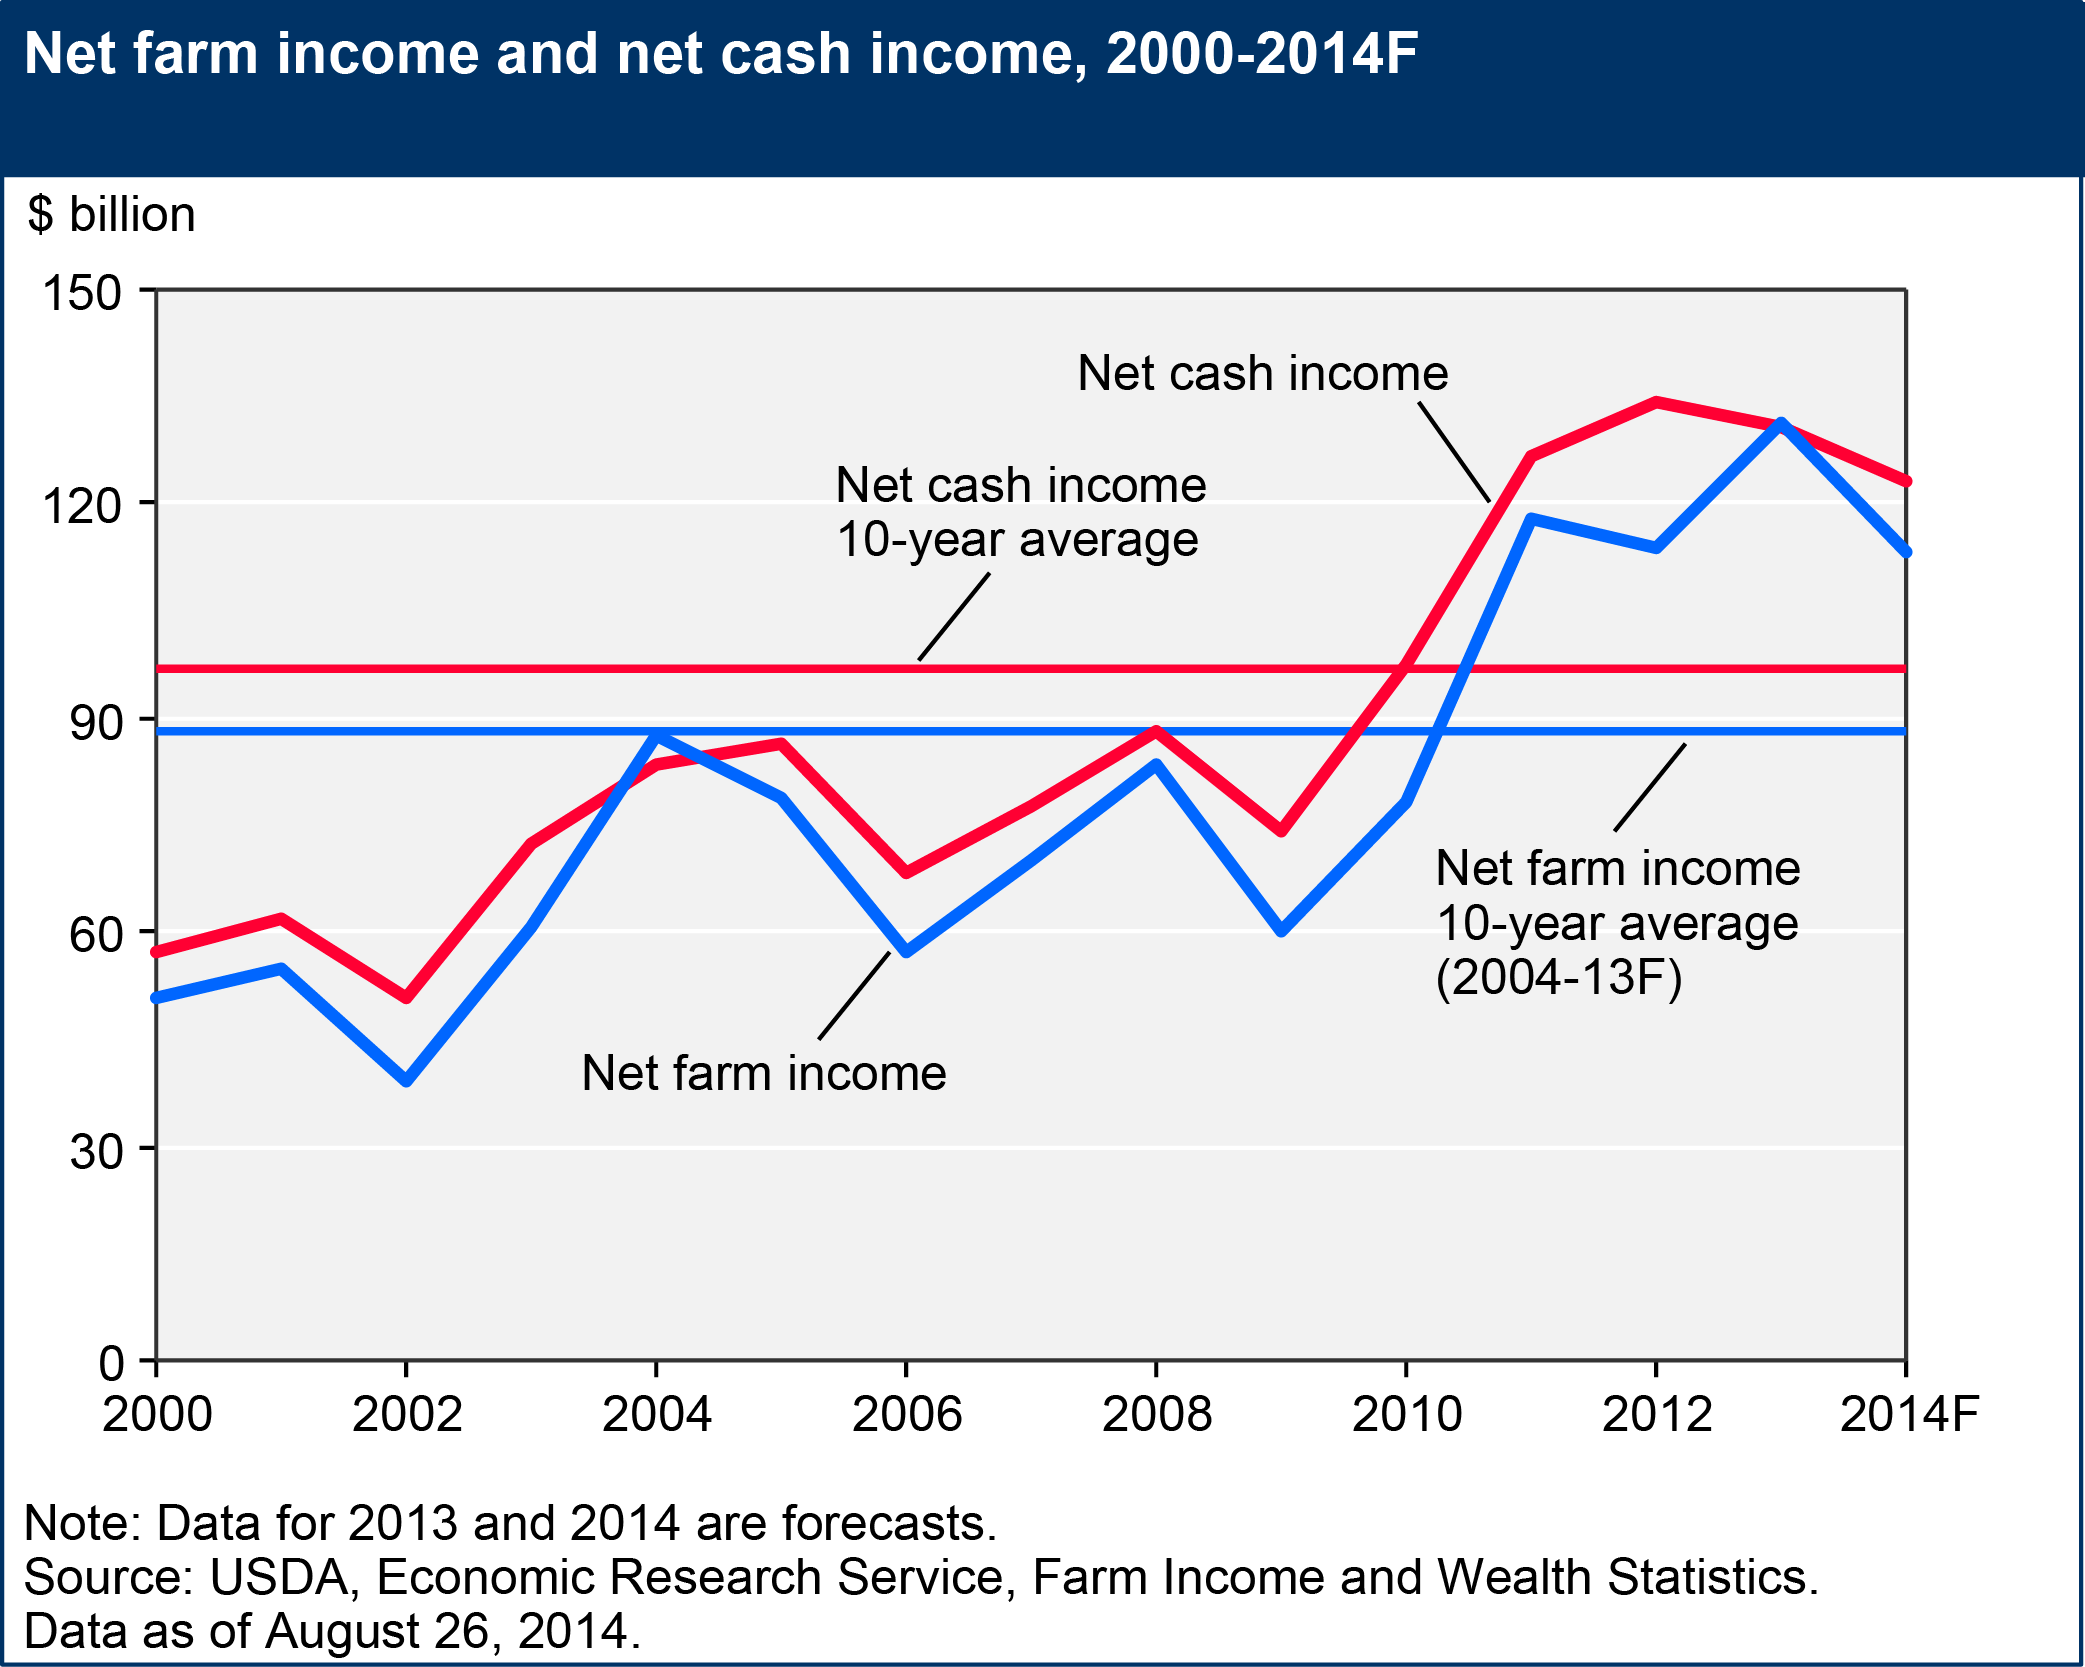 Net farm income 2000-2014